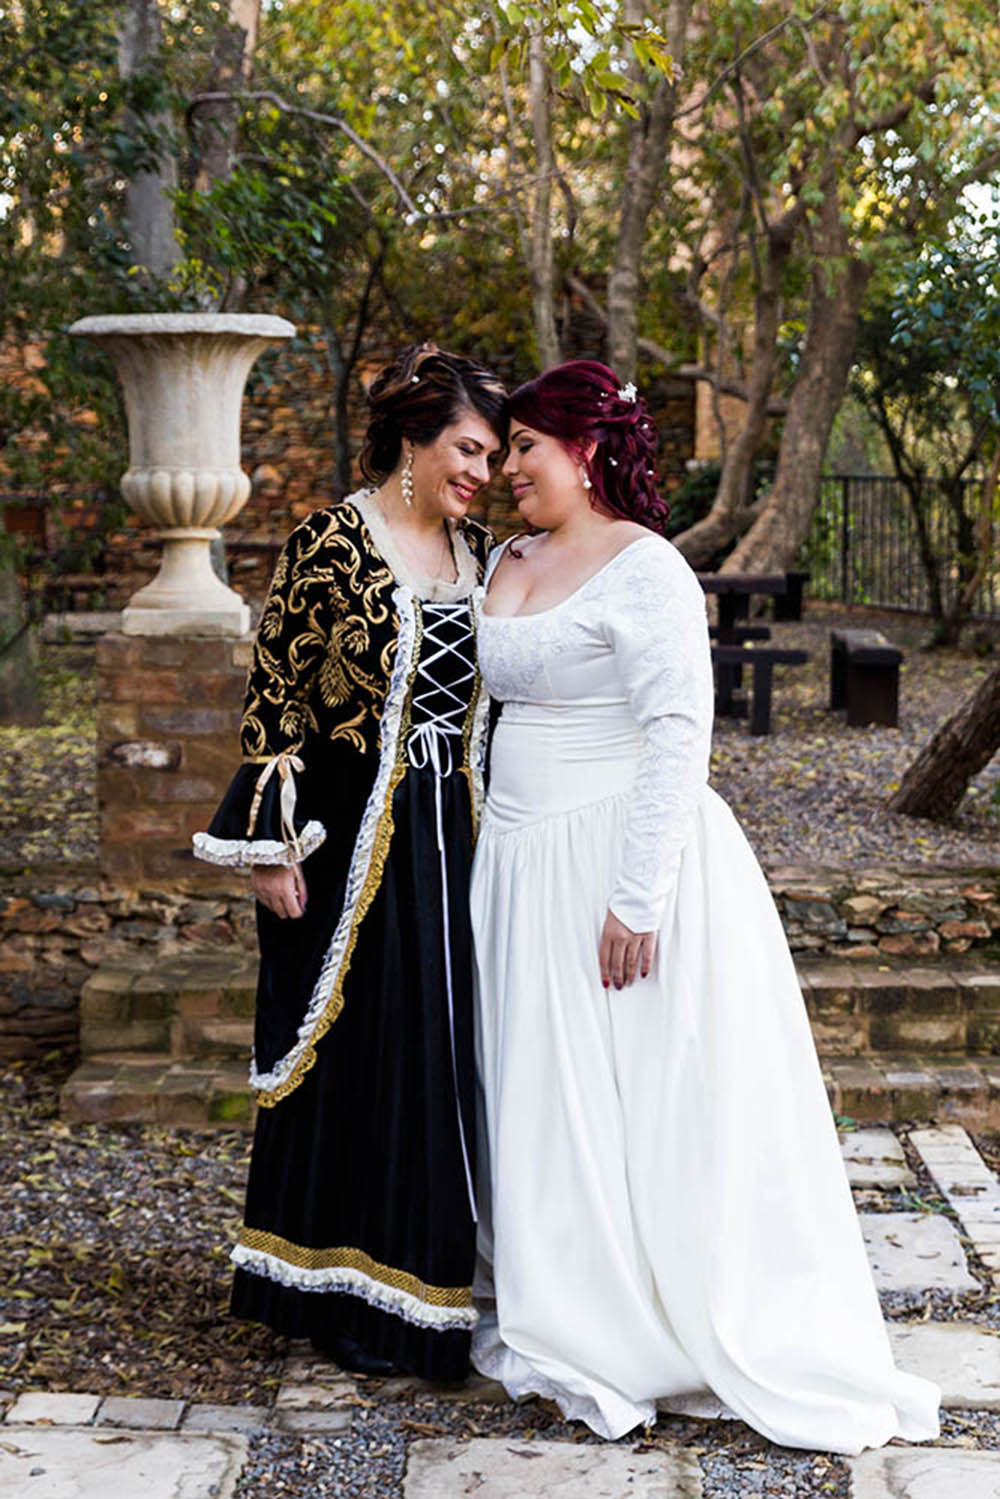 medieval-themed-wedding-medieval-wedding-dgr-photography-castle-wedding-107